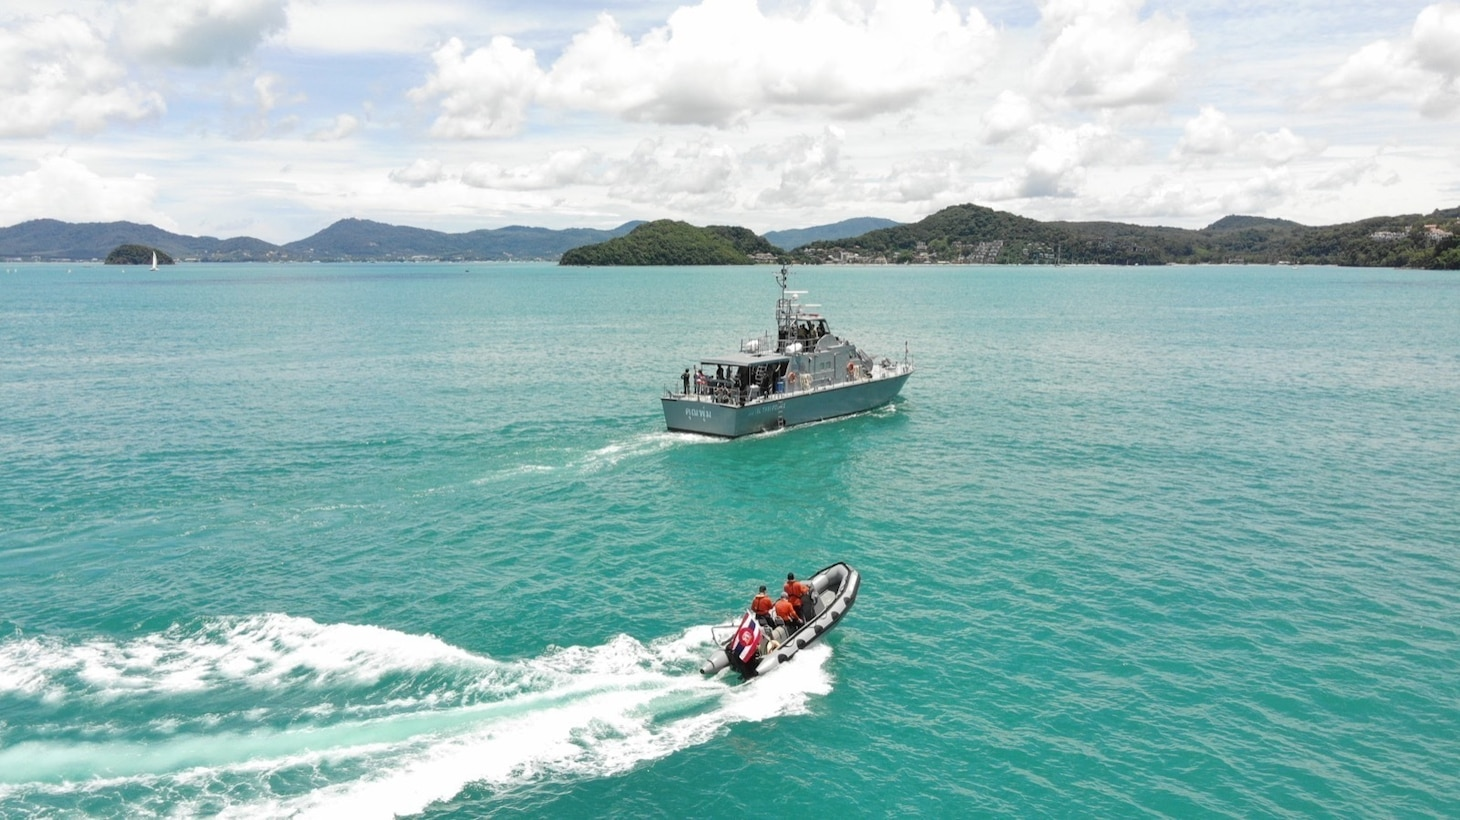 PHUKET, Thailand (Aug. 15, 2021) U.S. Navy and Thailand Maritime Enforcement Command Center (Thai MECC) personnel practice maritime tactics, techniques and procedures during Southeast Asia Cooperation and Training (SEACAT) exercise.